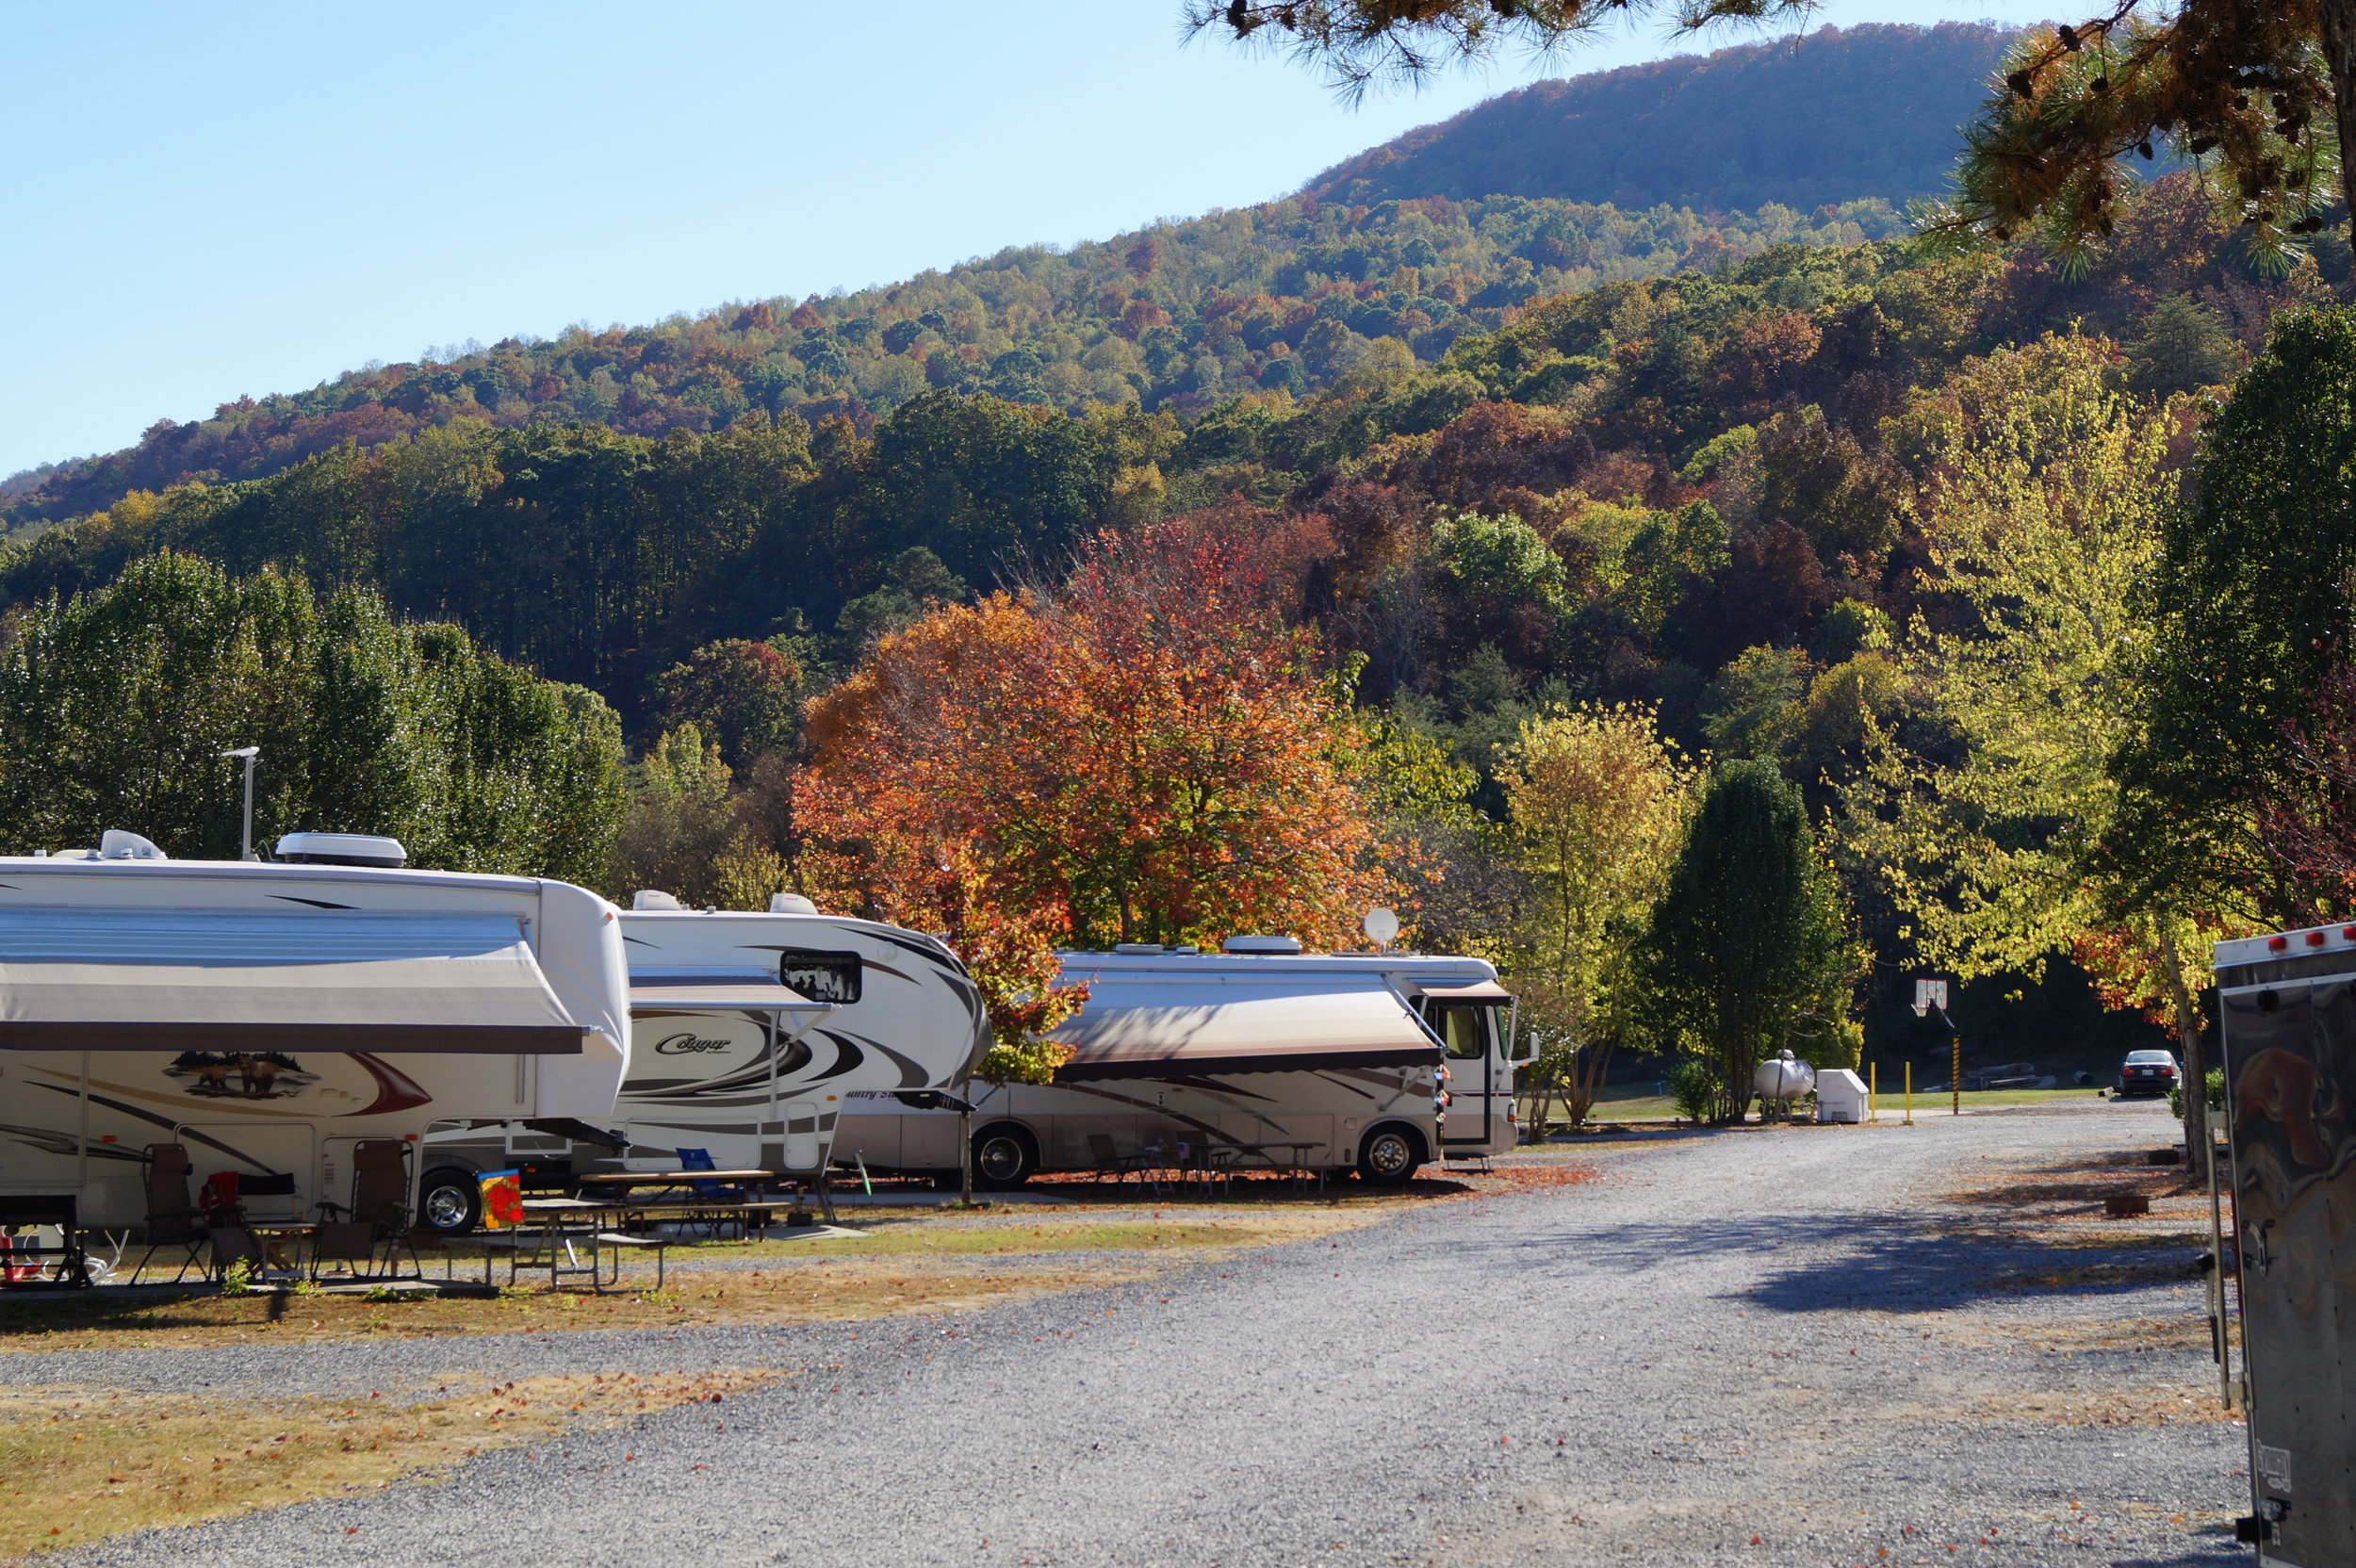 RV & Camp Sites - Full Service, Water & Electric, and Primitive Sites